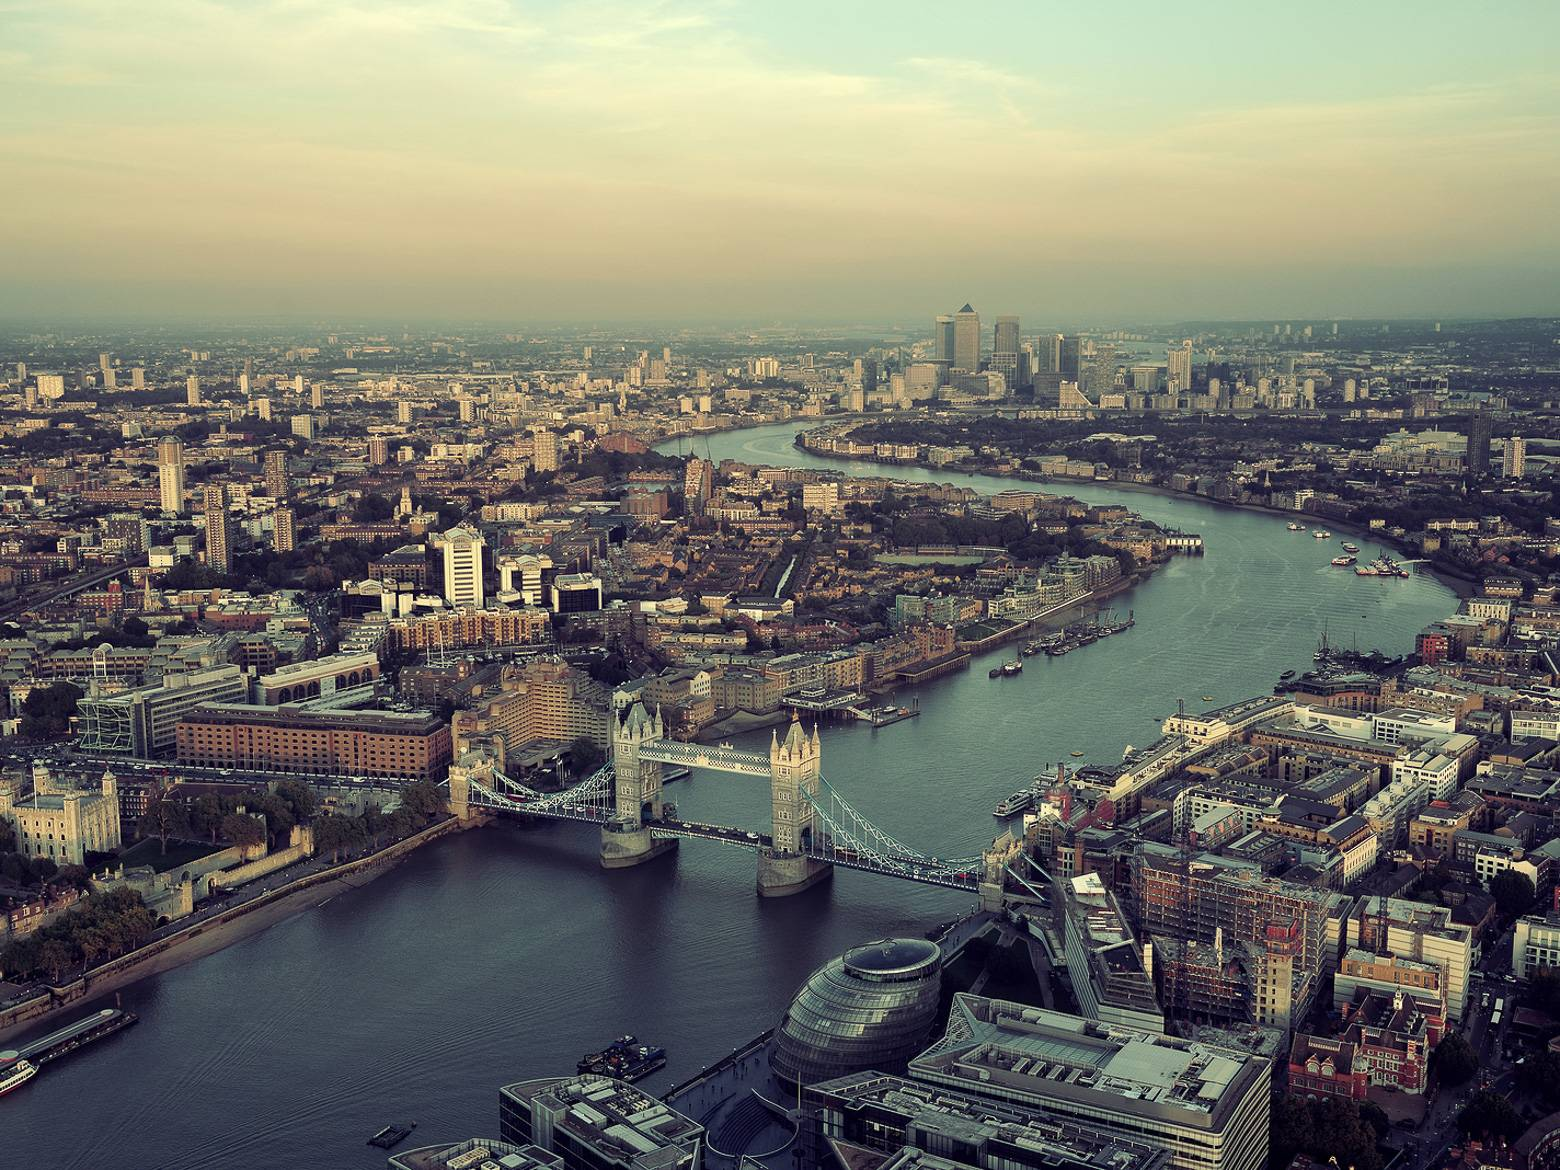 Image of an aerial view with Tower Bridge and London city hall